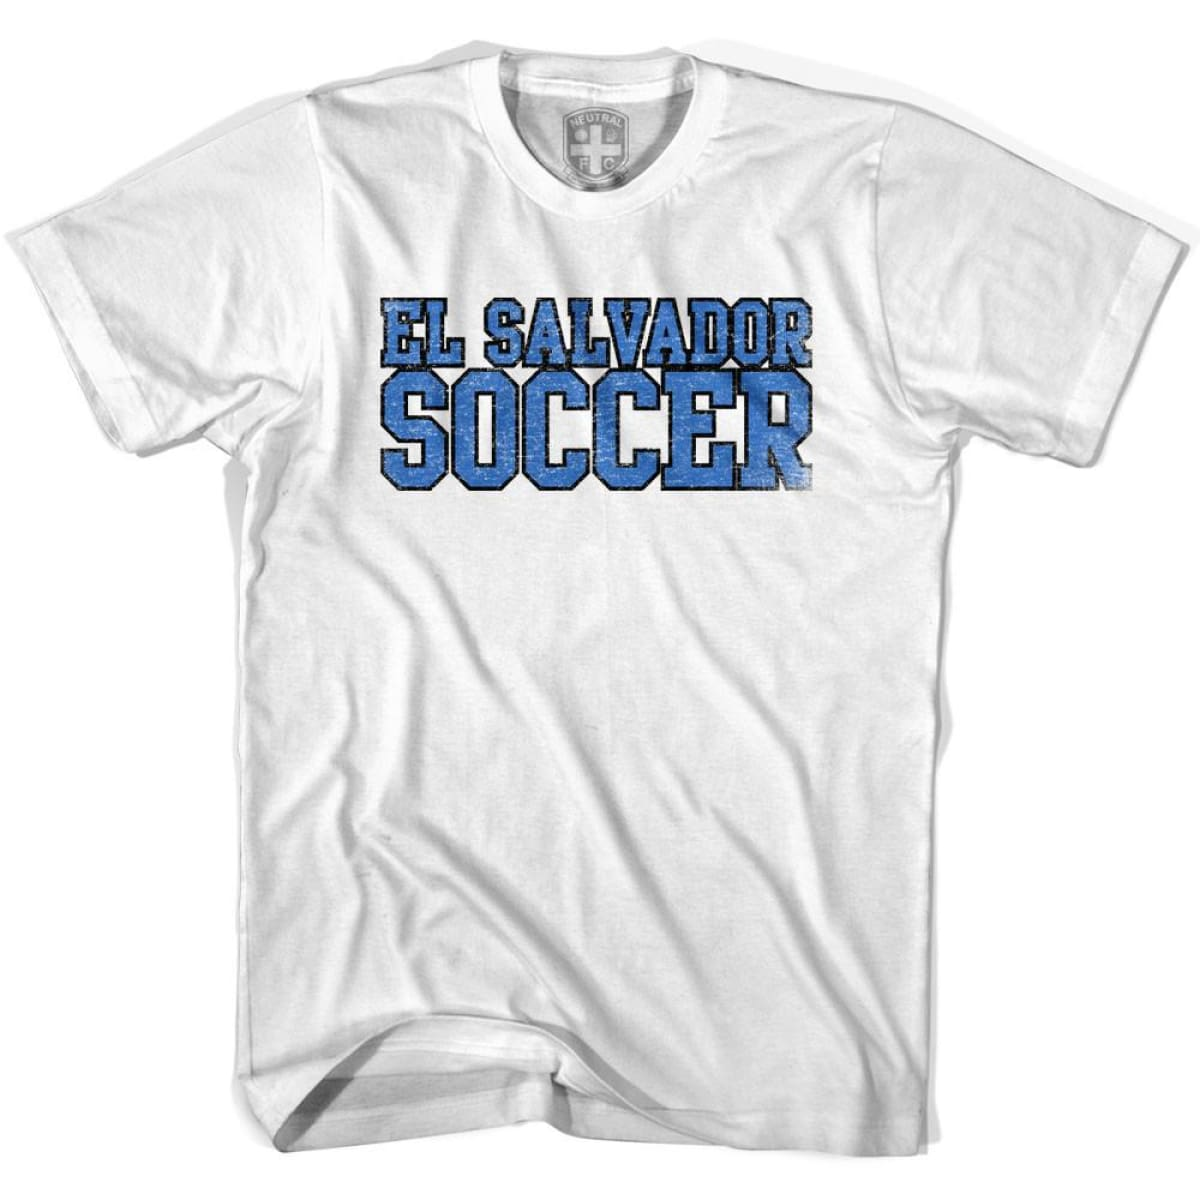 El Salvador Soccer Nations World Cup T-shirt - White / Youth X-Small - Ultras Soccer T-shirts